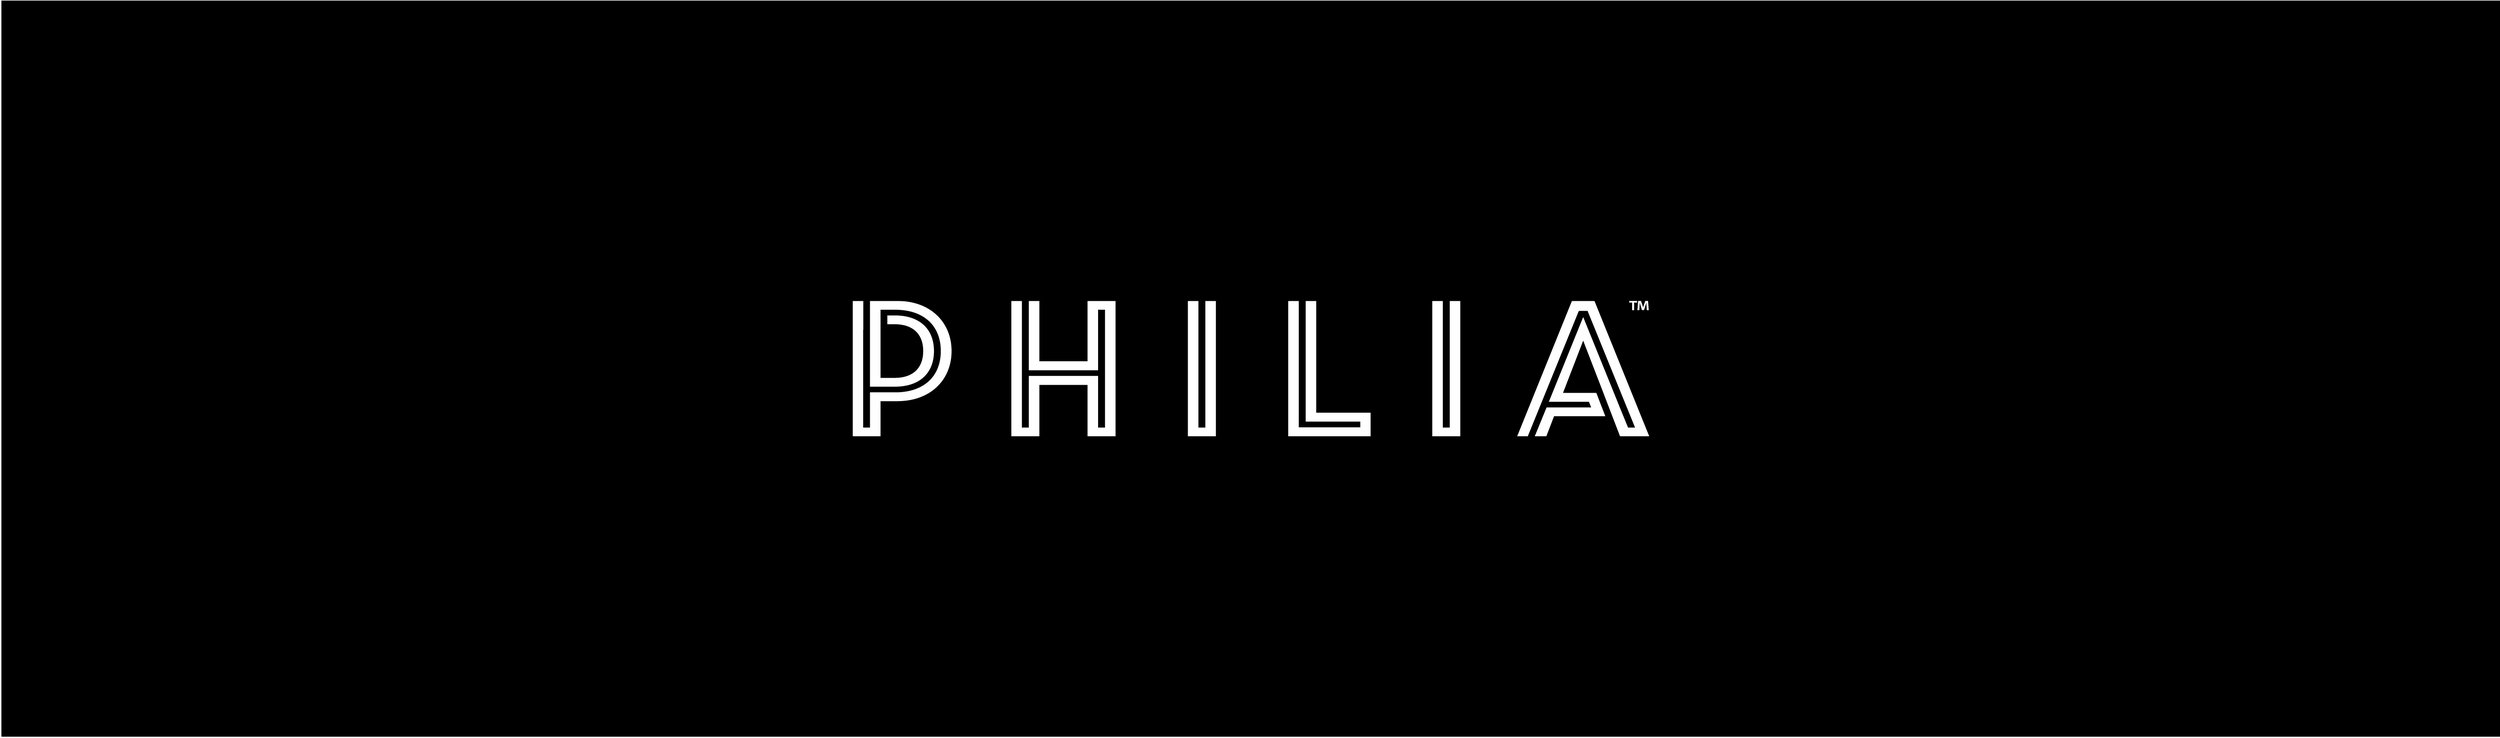 Philia_Website-04.jpg